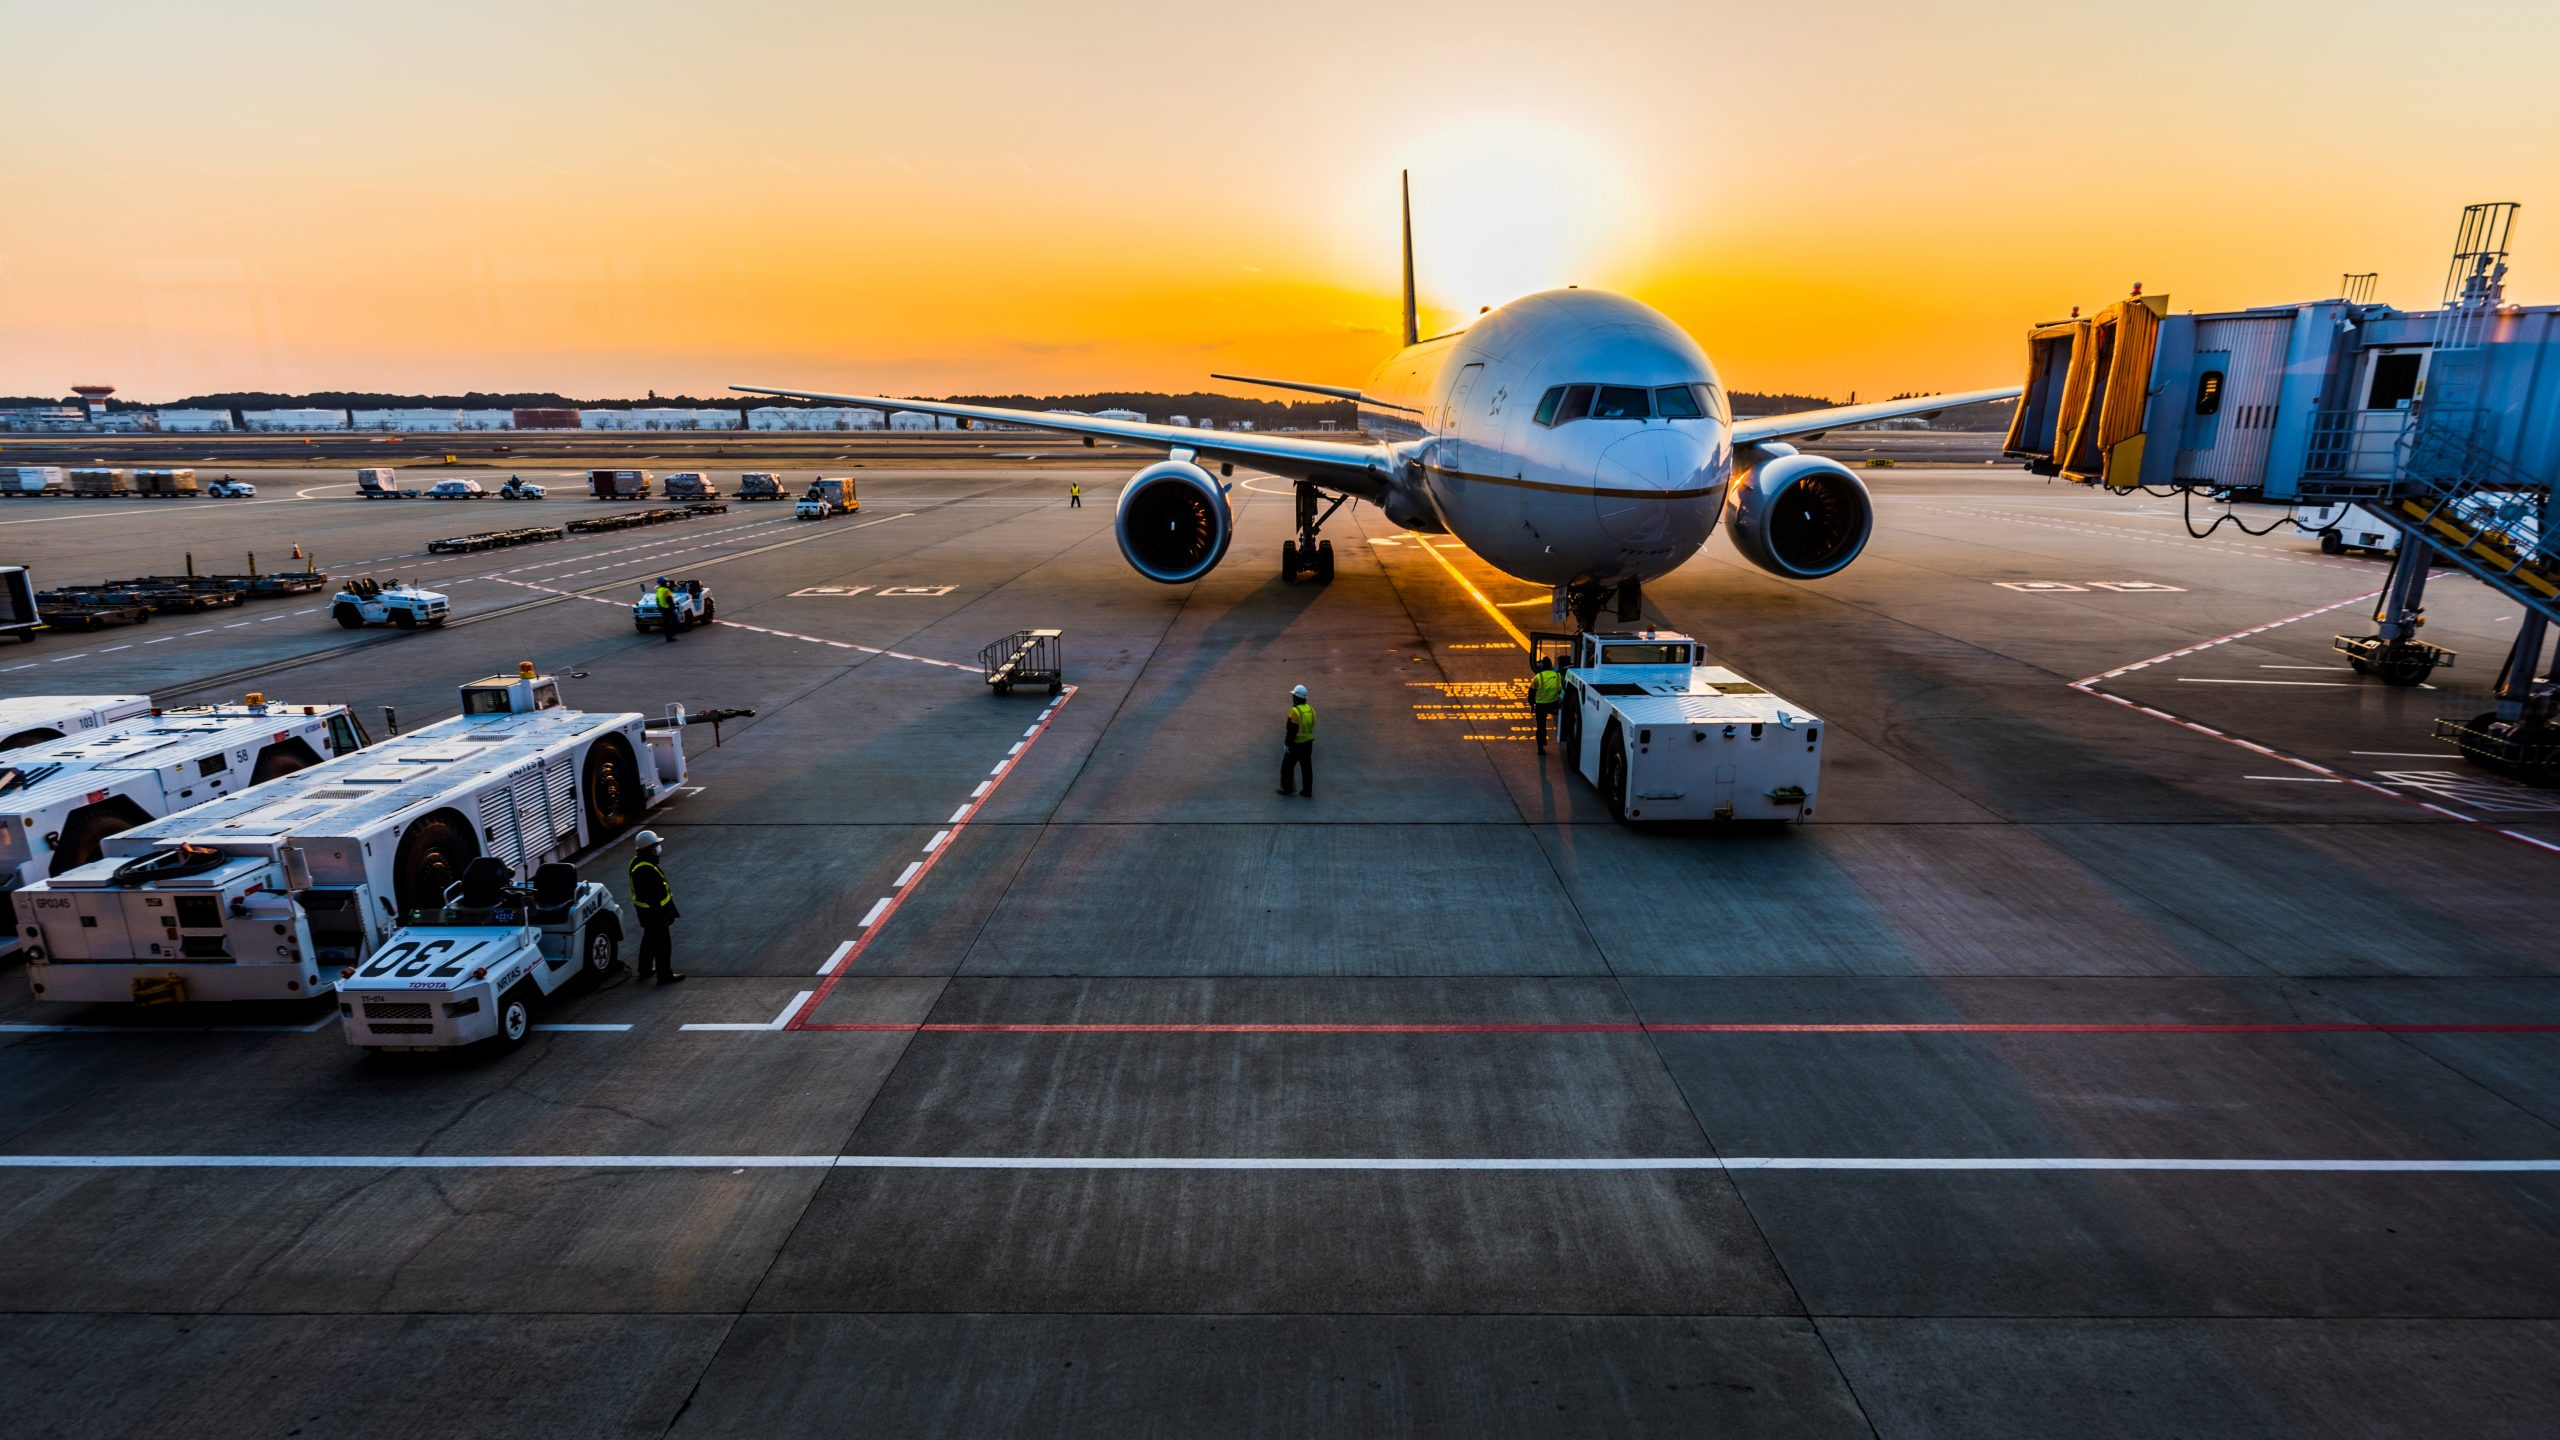 reducing the climate impact of aviation